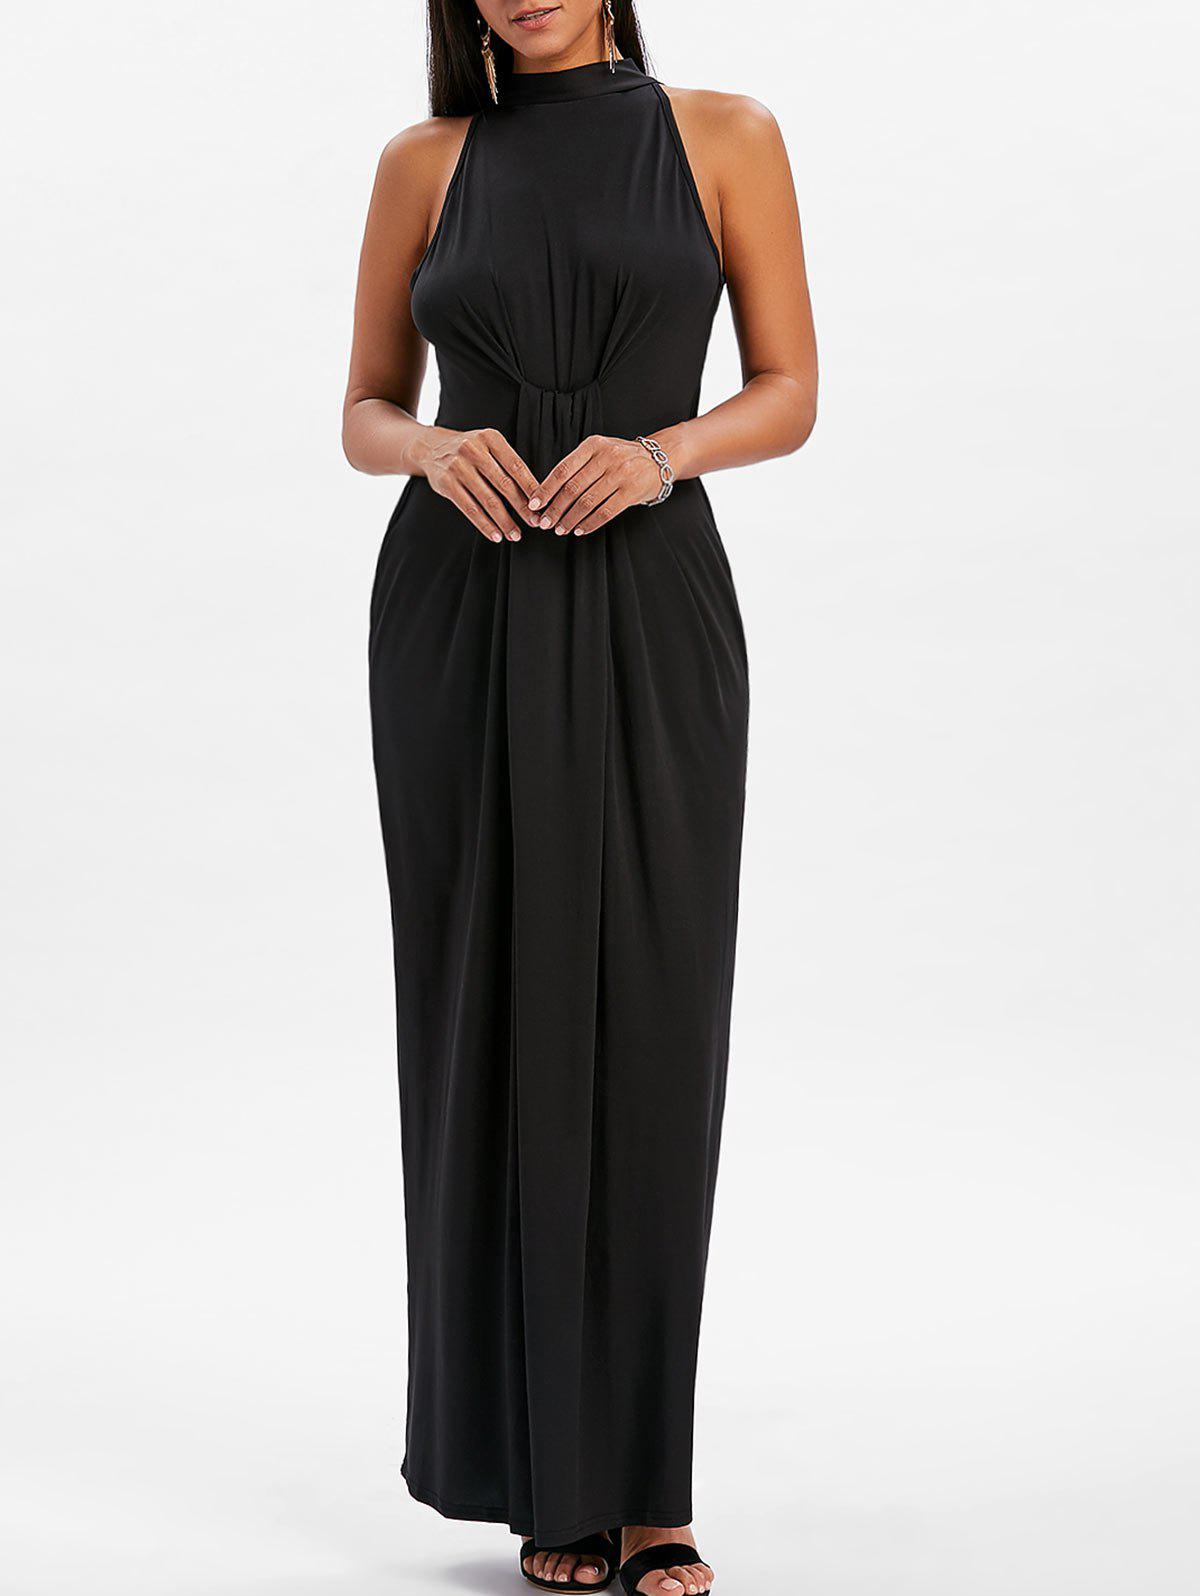 New Mock Neck Knot Maxi Dress